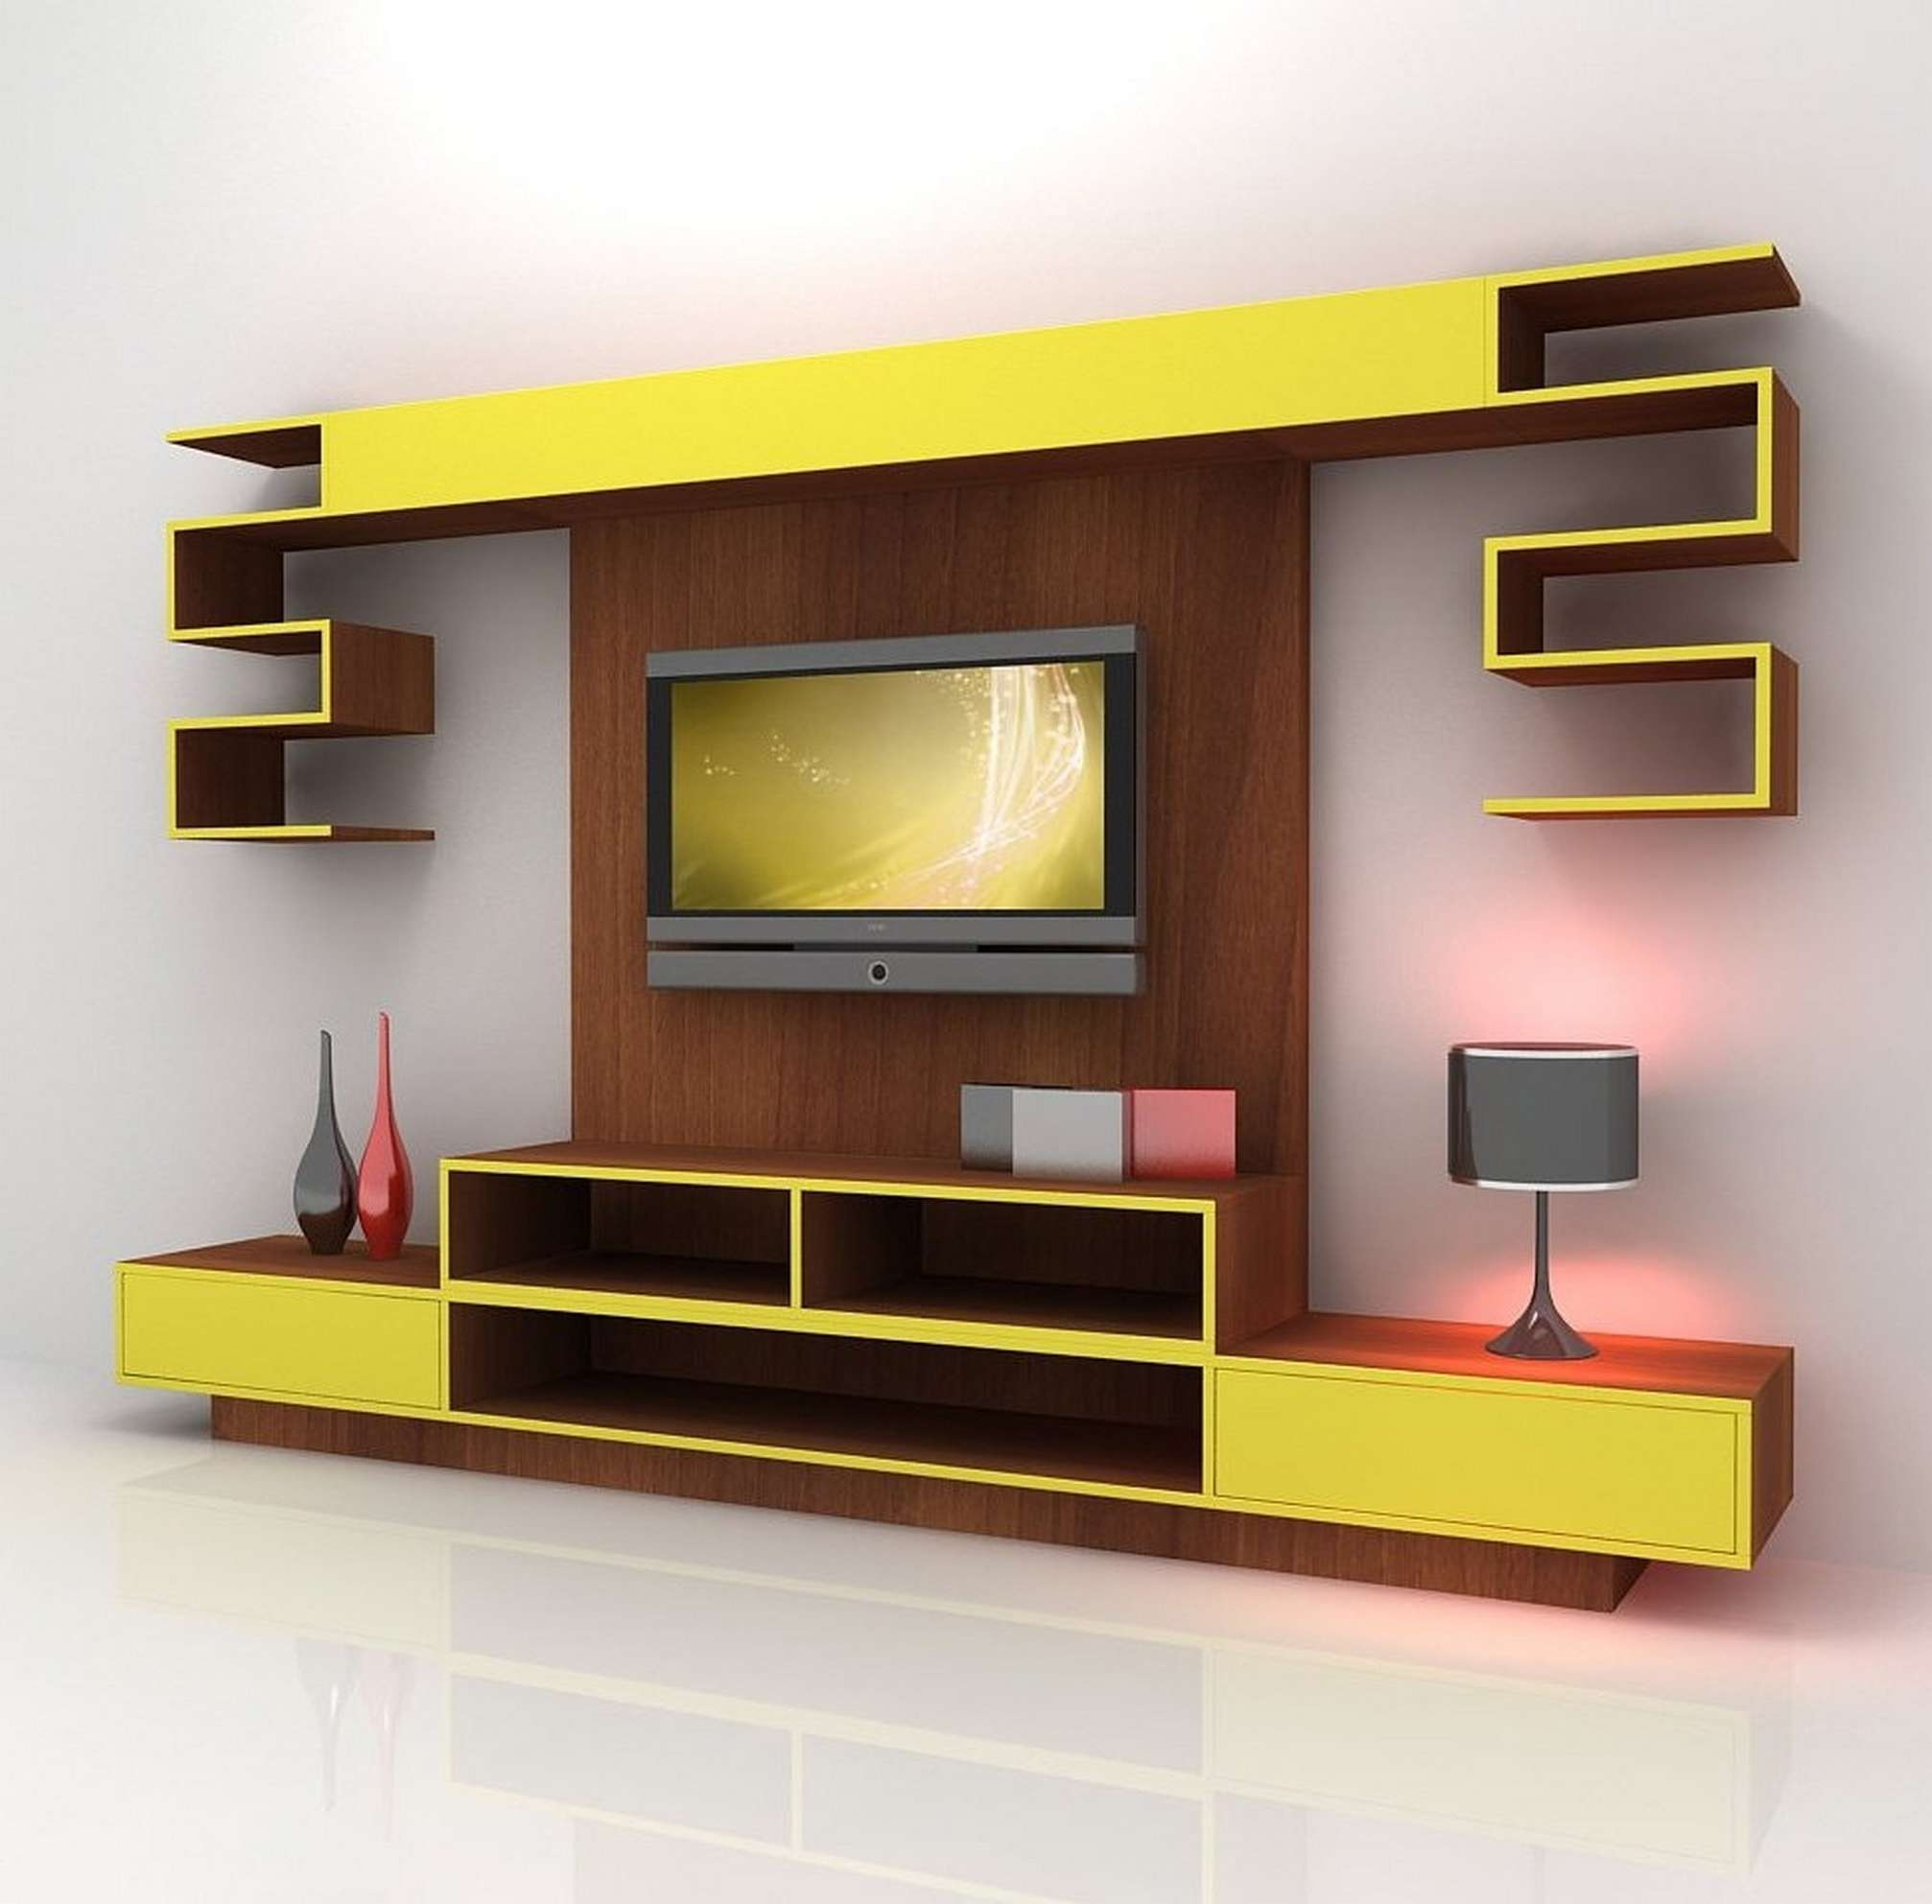 2019 latest full wall tv cabinets. Black Bedroom Furniture Sets. Home Design Ideas